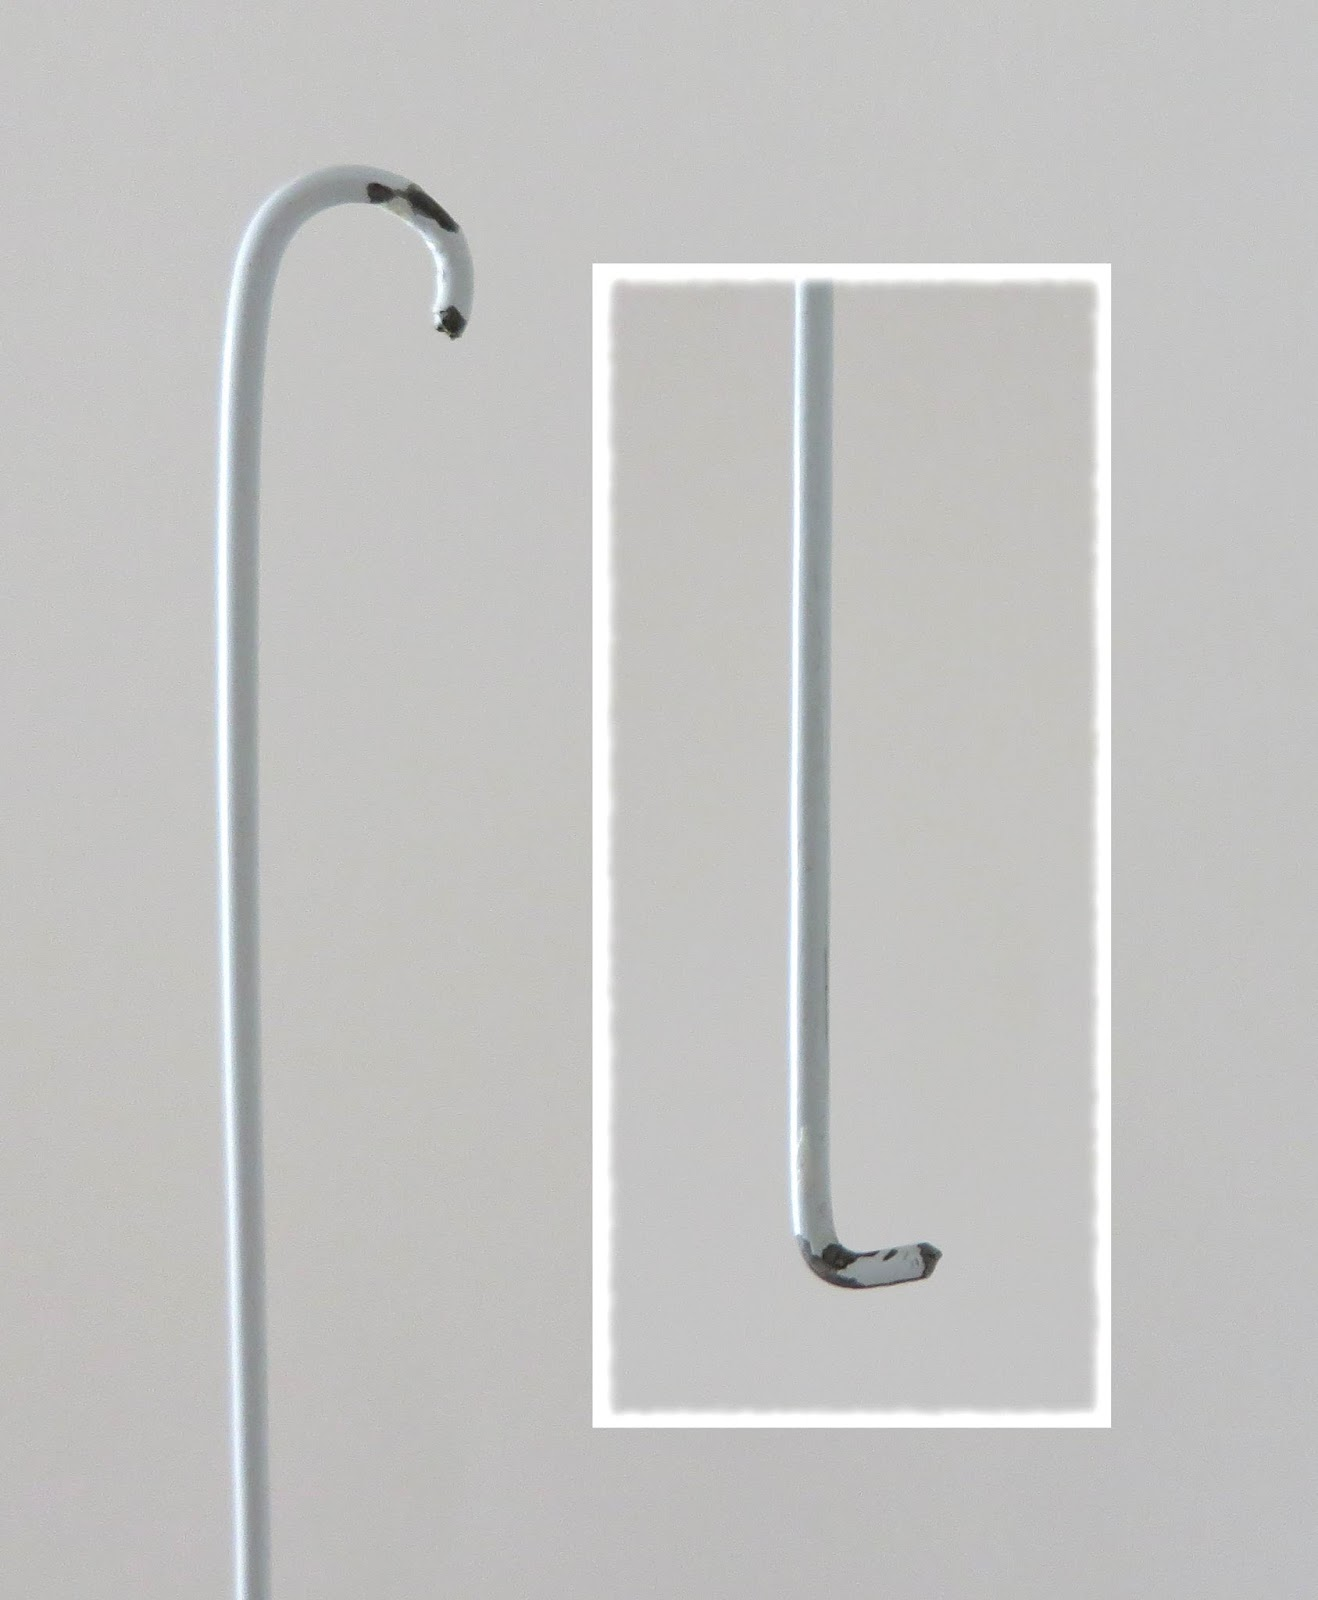 Model Rocket Building: More Wire Hook Pull Tools, TIP